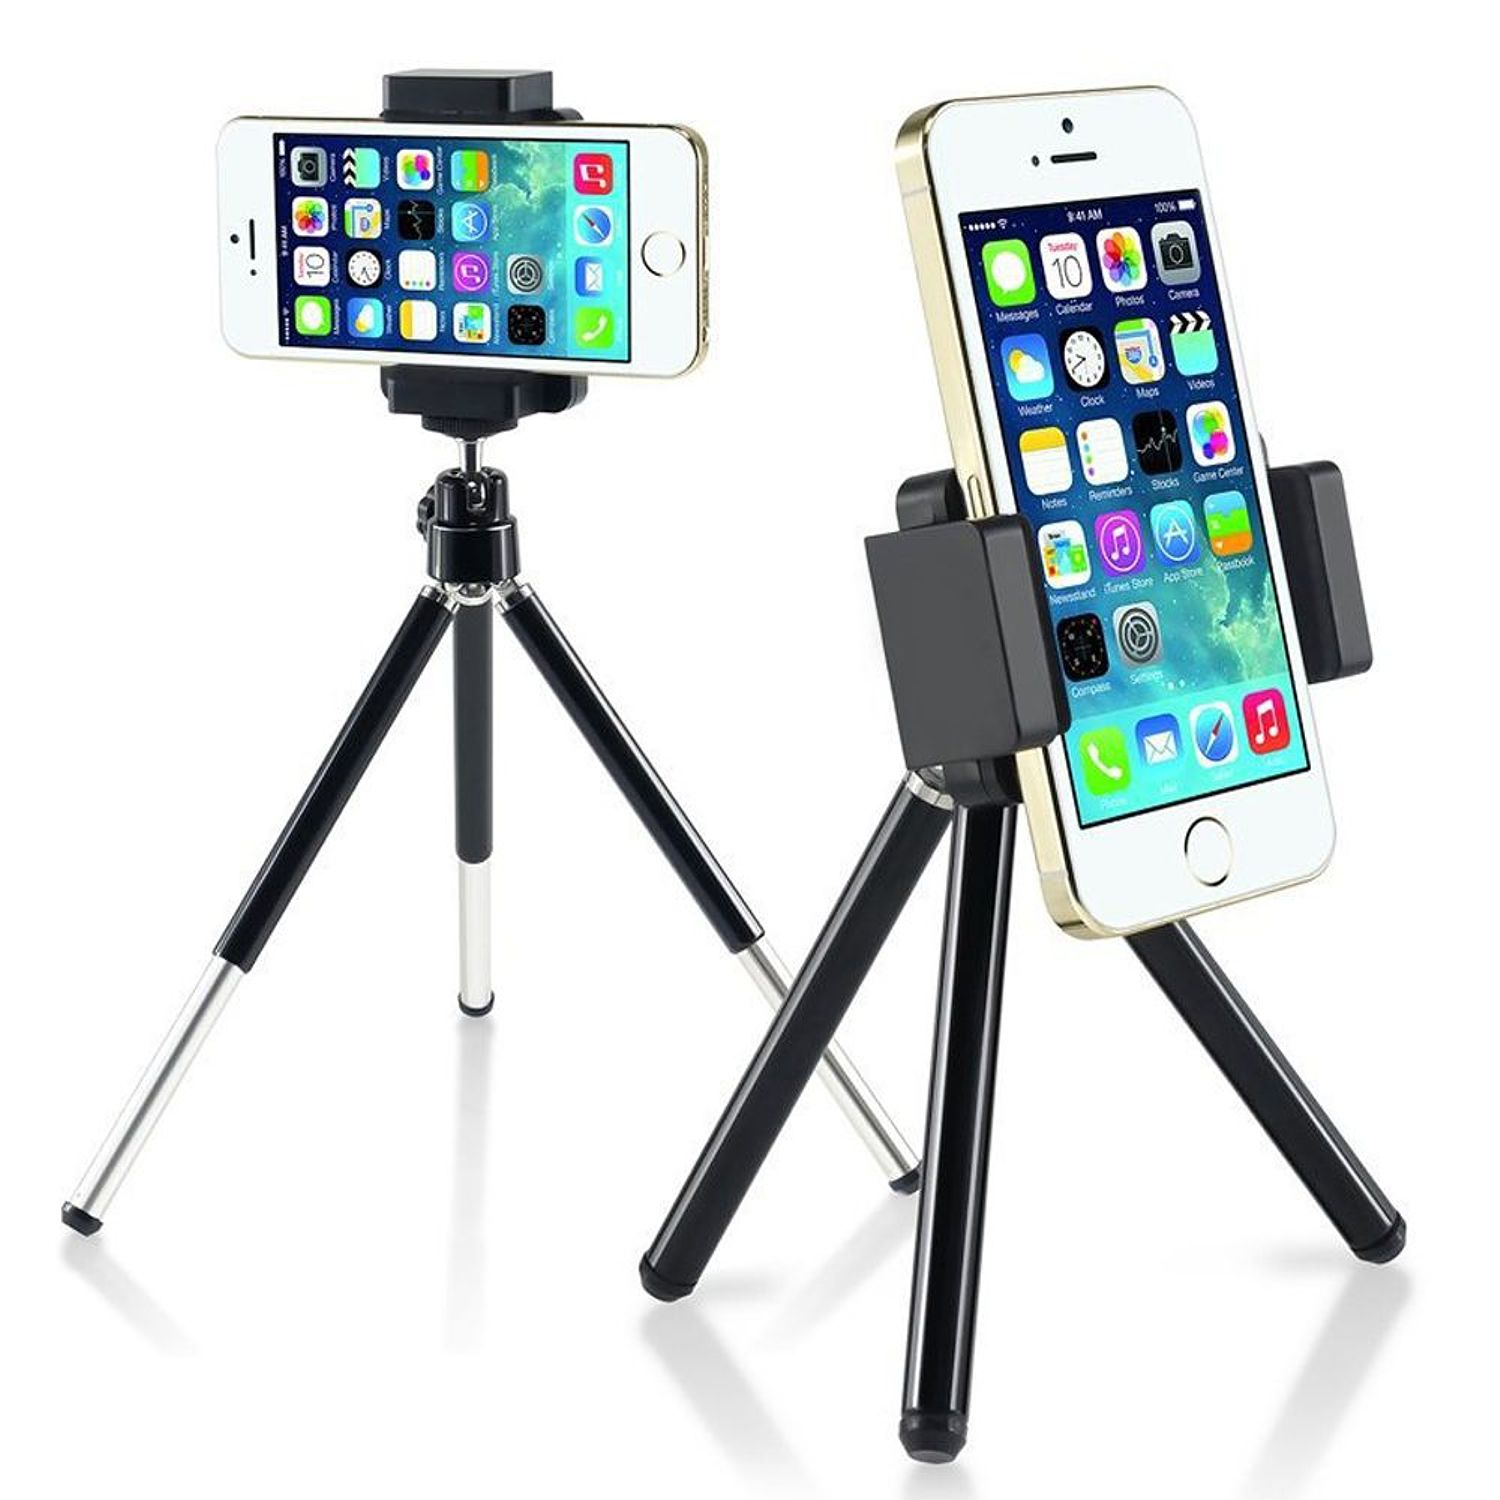 Insten 360 degree Ball Head Mini Phone Tripod Stand Holder for Smartphone Selfie Universal Samsung Galaxy S9 S8 S7 S6 S5 S4 Edge Note 8 5 4 J7 J3 Apple iPhone XS X 10 7 8 6 6S Plus SE 5S Pocket-Size